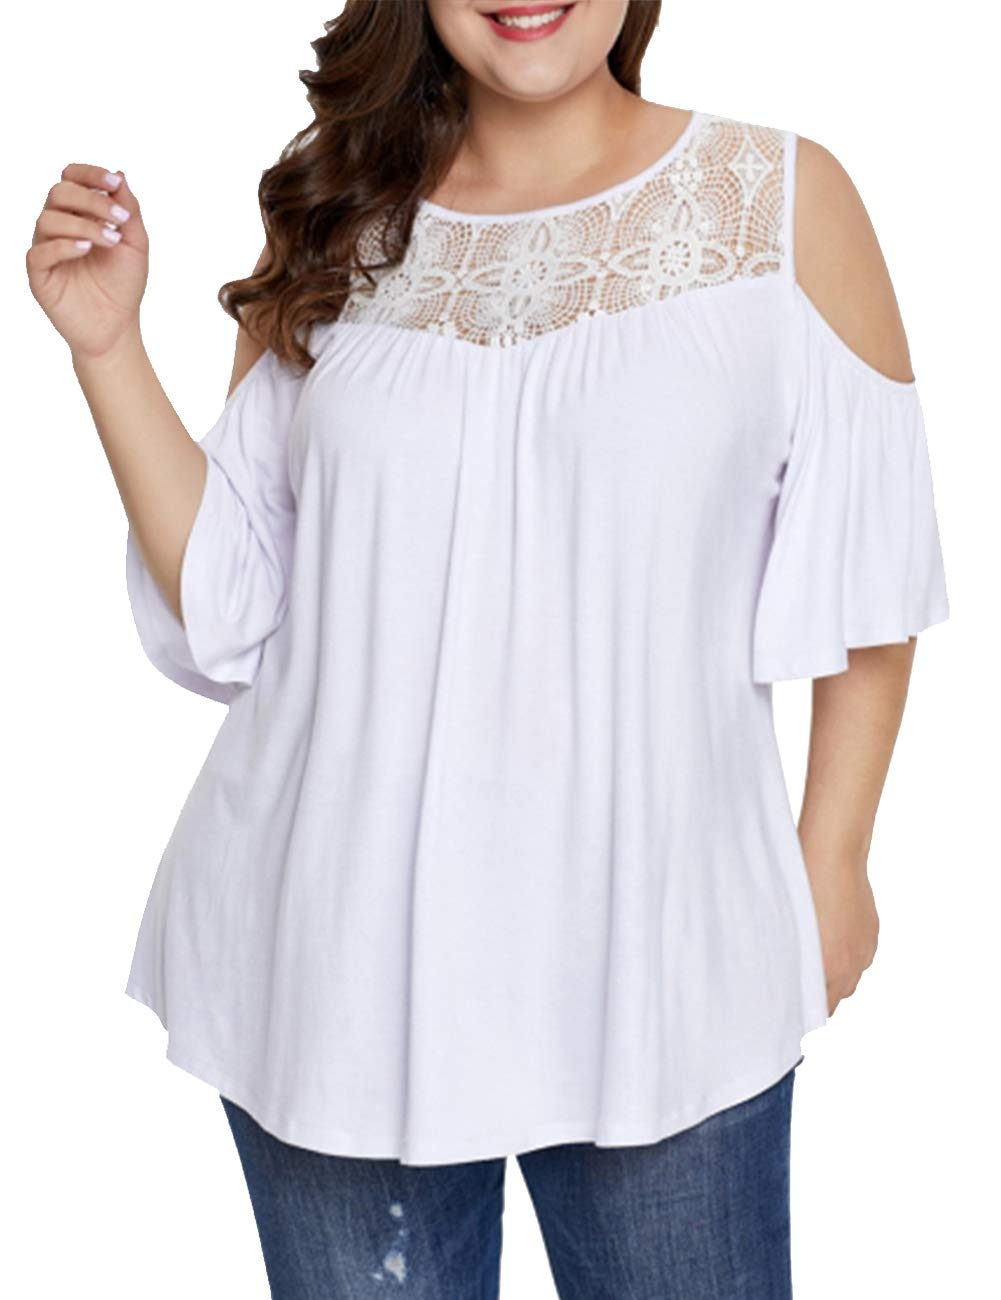 DIOLOCA Cold Shoulder Blouses for Women Plus Size Lace Tops Swing Casual Shirts Solid Color Short Sleeve White 2X